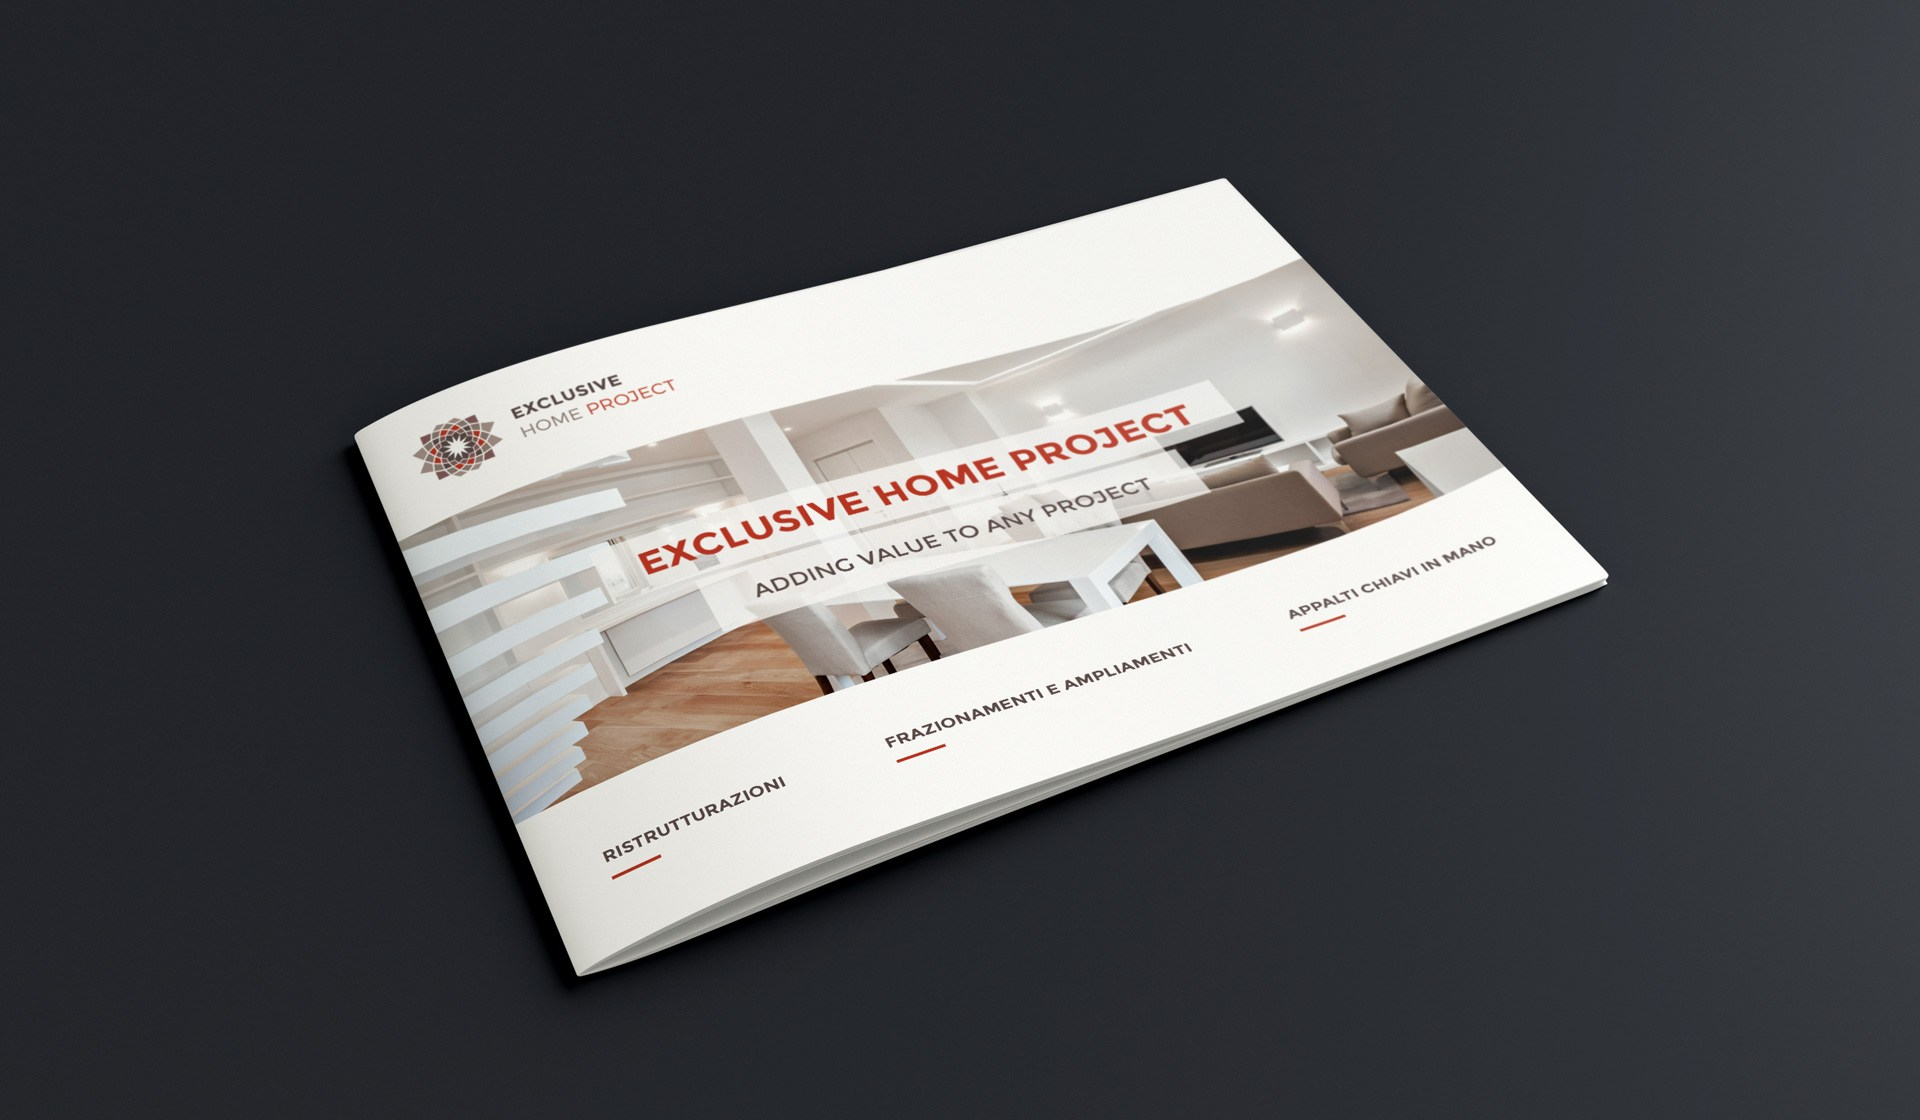 Nuovo sito web per Exclusive Home Project